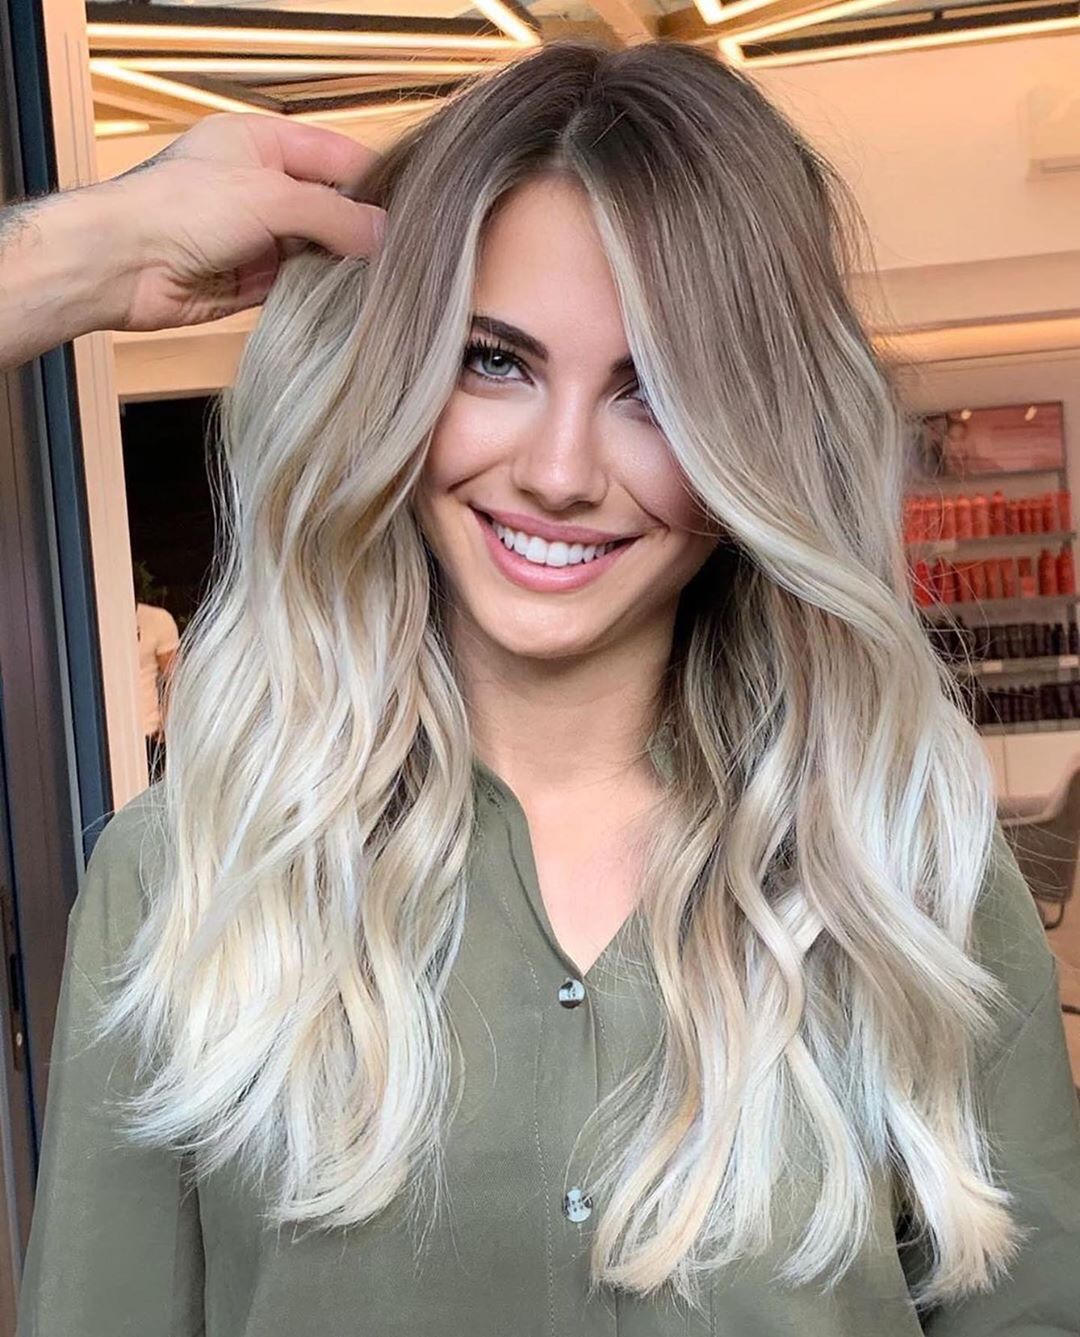 Female Long Hairstyles with Color Trends - Long Hair Styles and Haircuts in 2021 - PoPular Haircuts